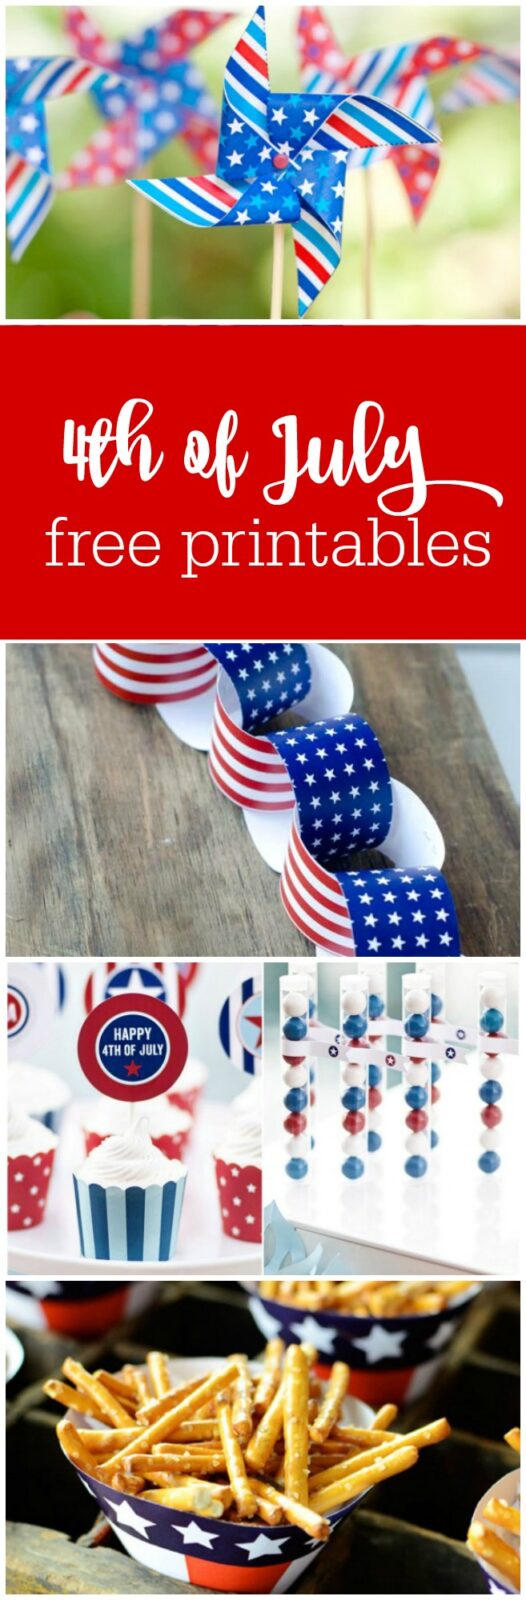 4th of July free printables curated by The Party Teacher